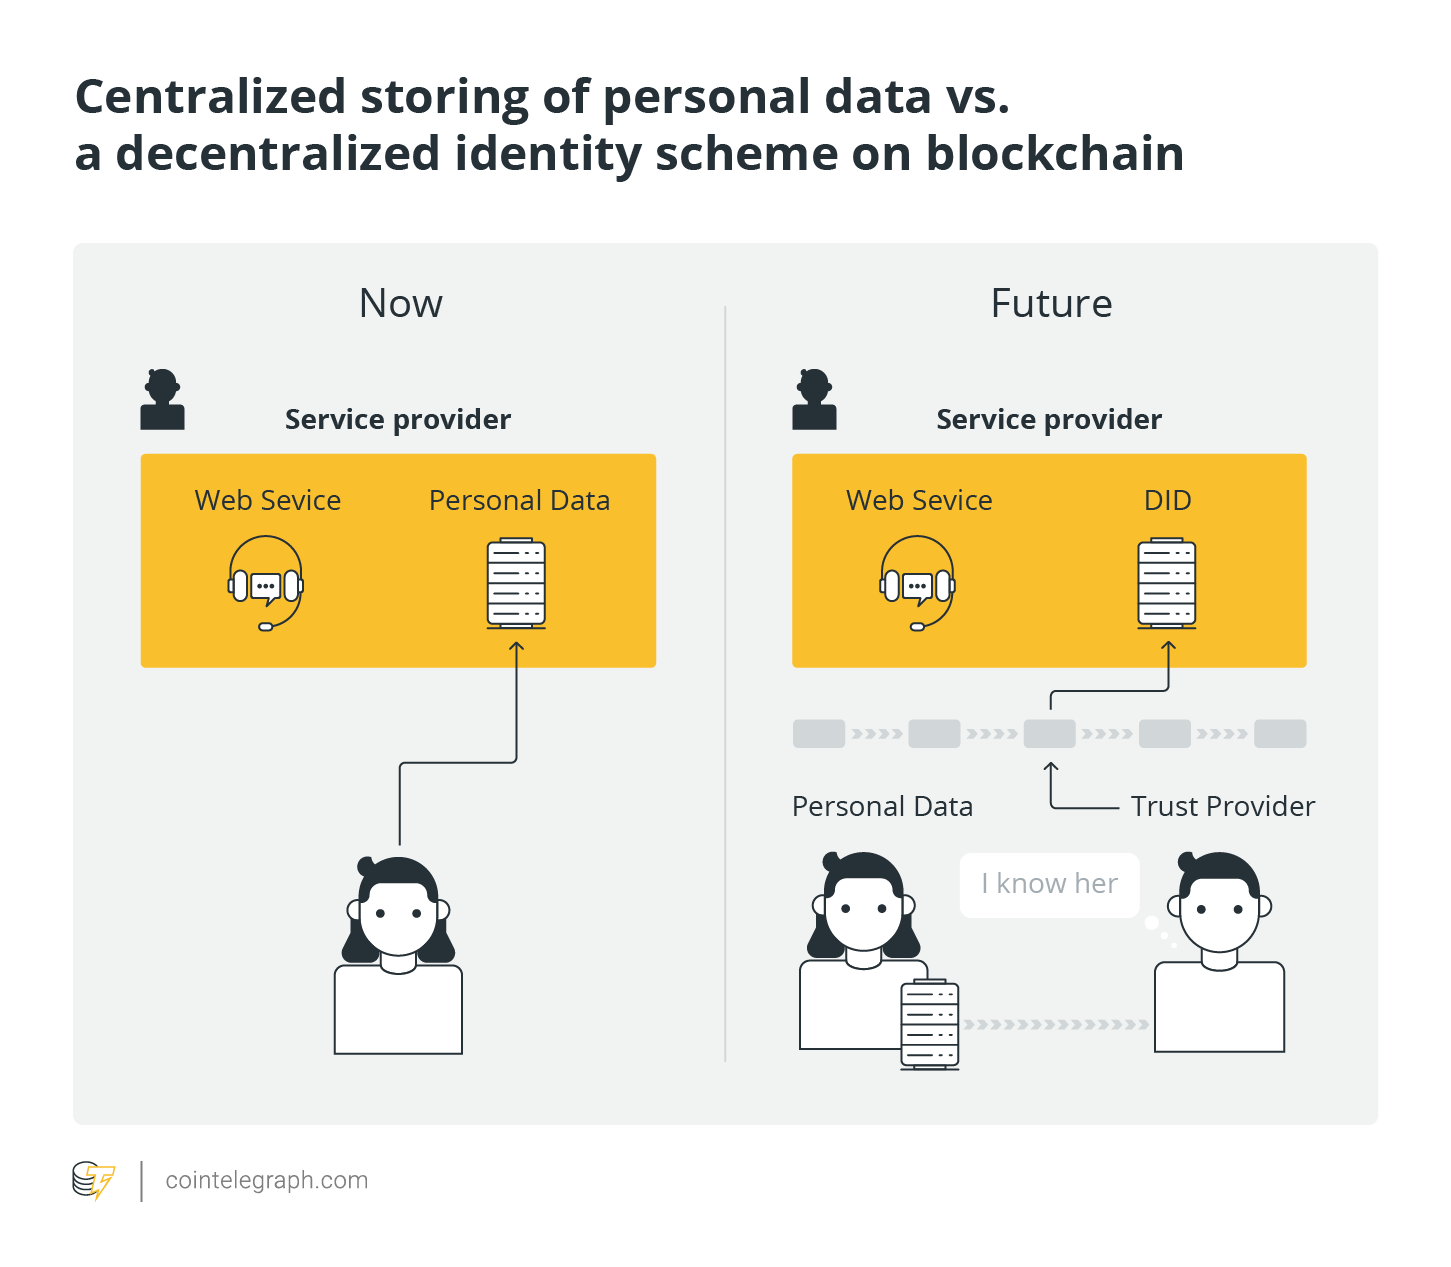 Centralized storing of personal data vs. a decentralized identity scheme on blockchain